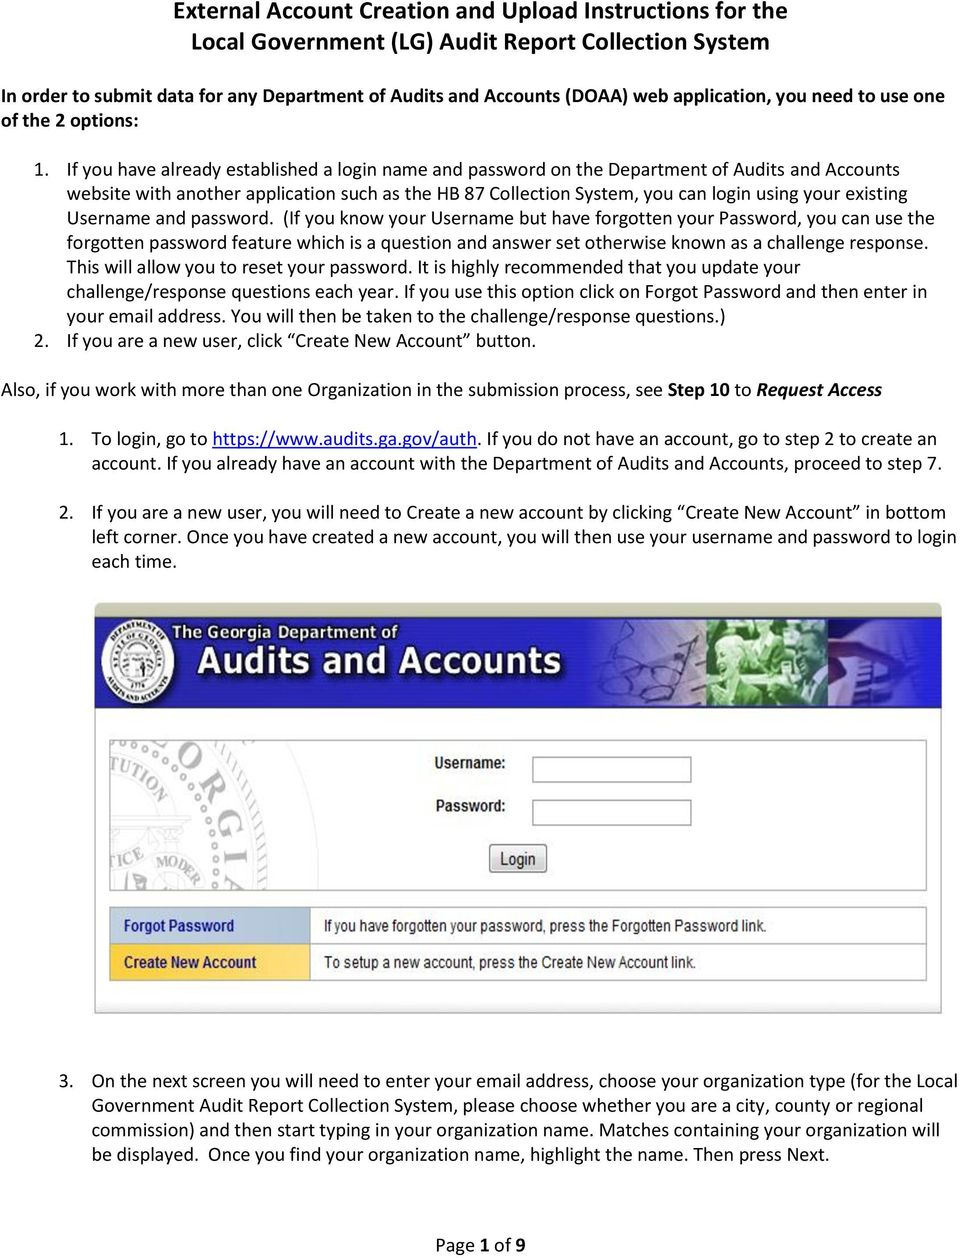 If you have already established a login name and password on the Department of Audits and Accounts website with another application such as the HB 87 Collection System, you can login using your